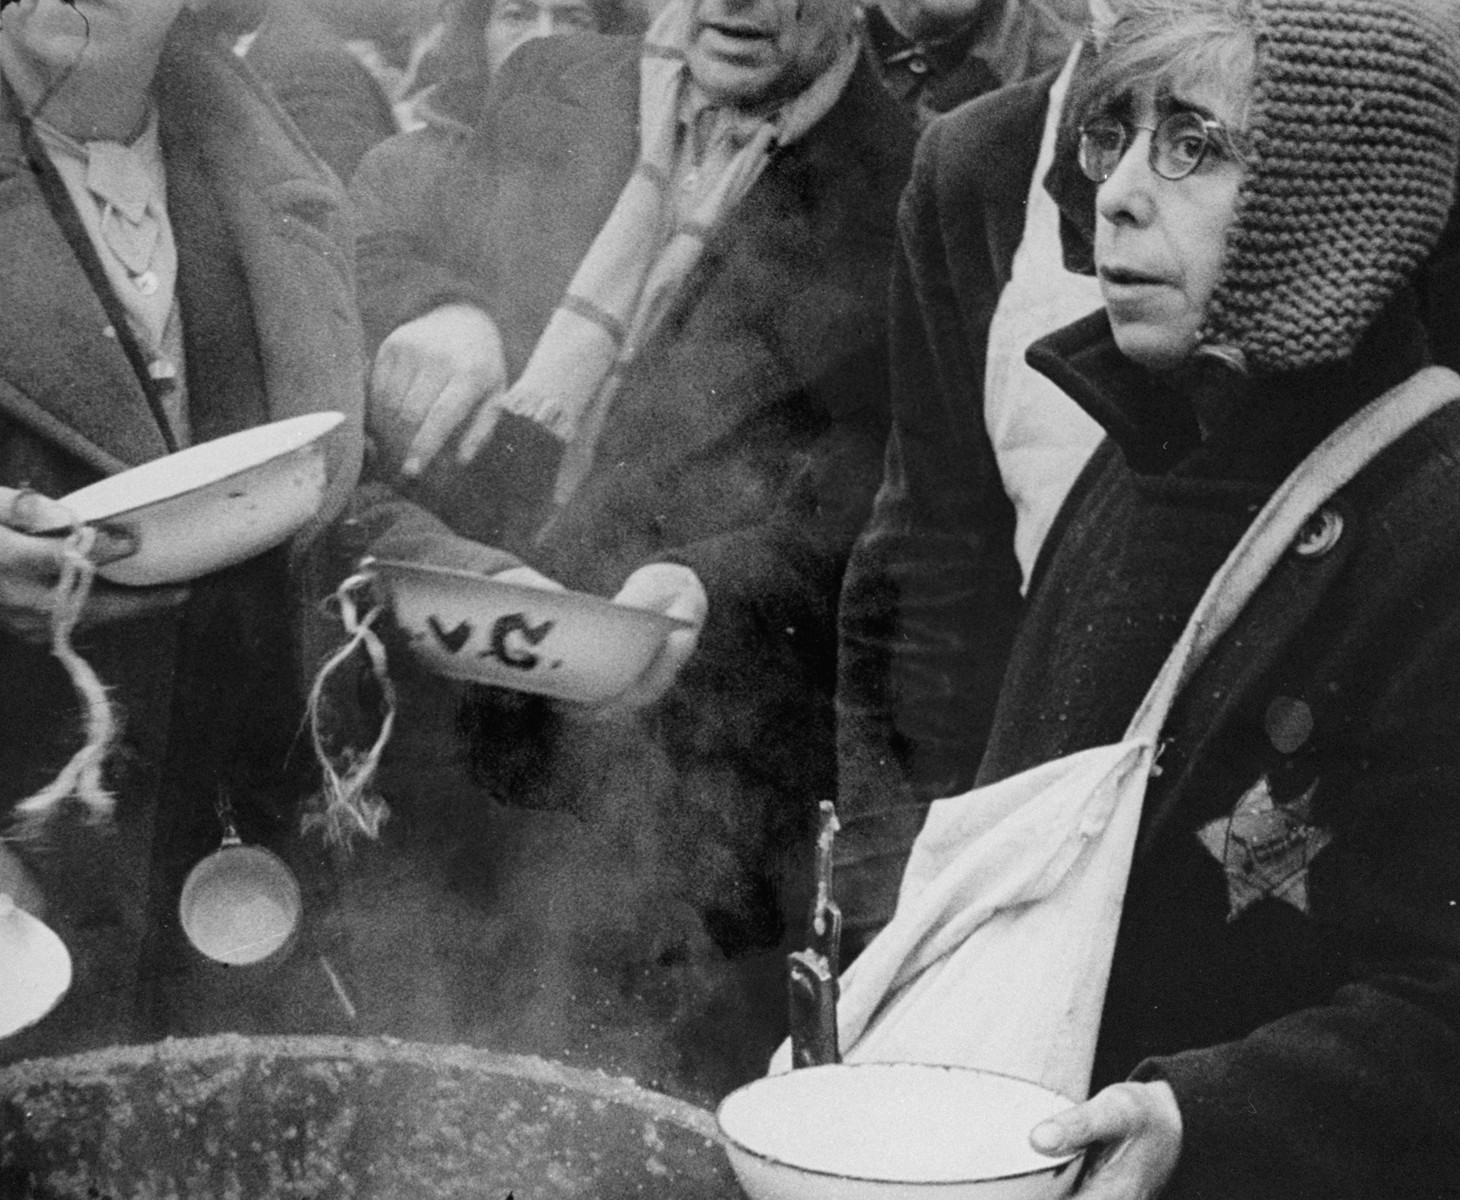 A woman who has just arrived in Theresienstadt with a transport of Dutch Jews waits to receive her bowl of  food in the courtyard of the ghetto. [oversized photo]